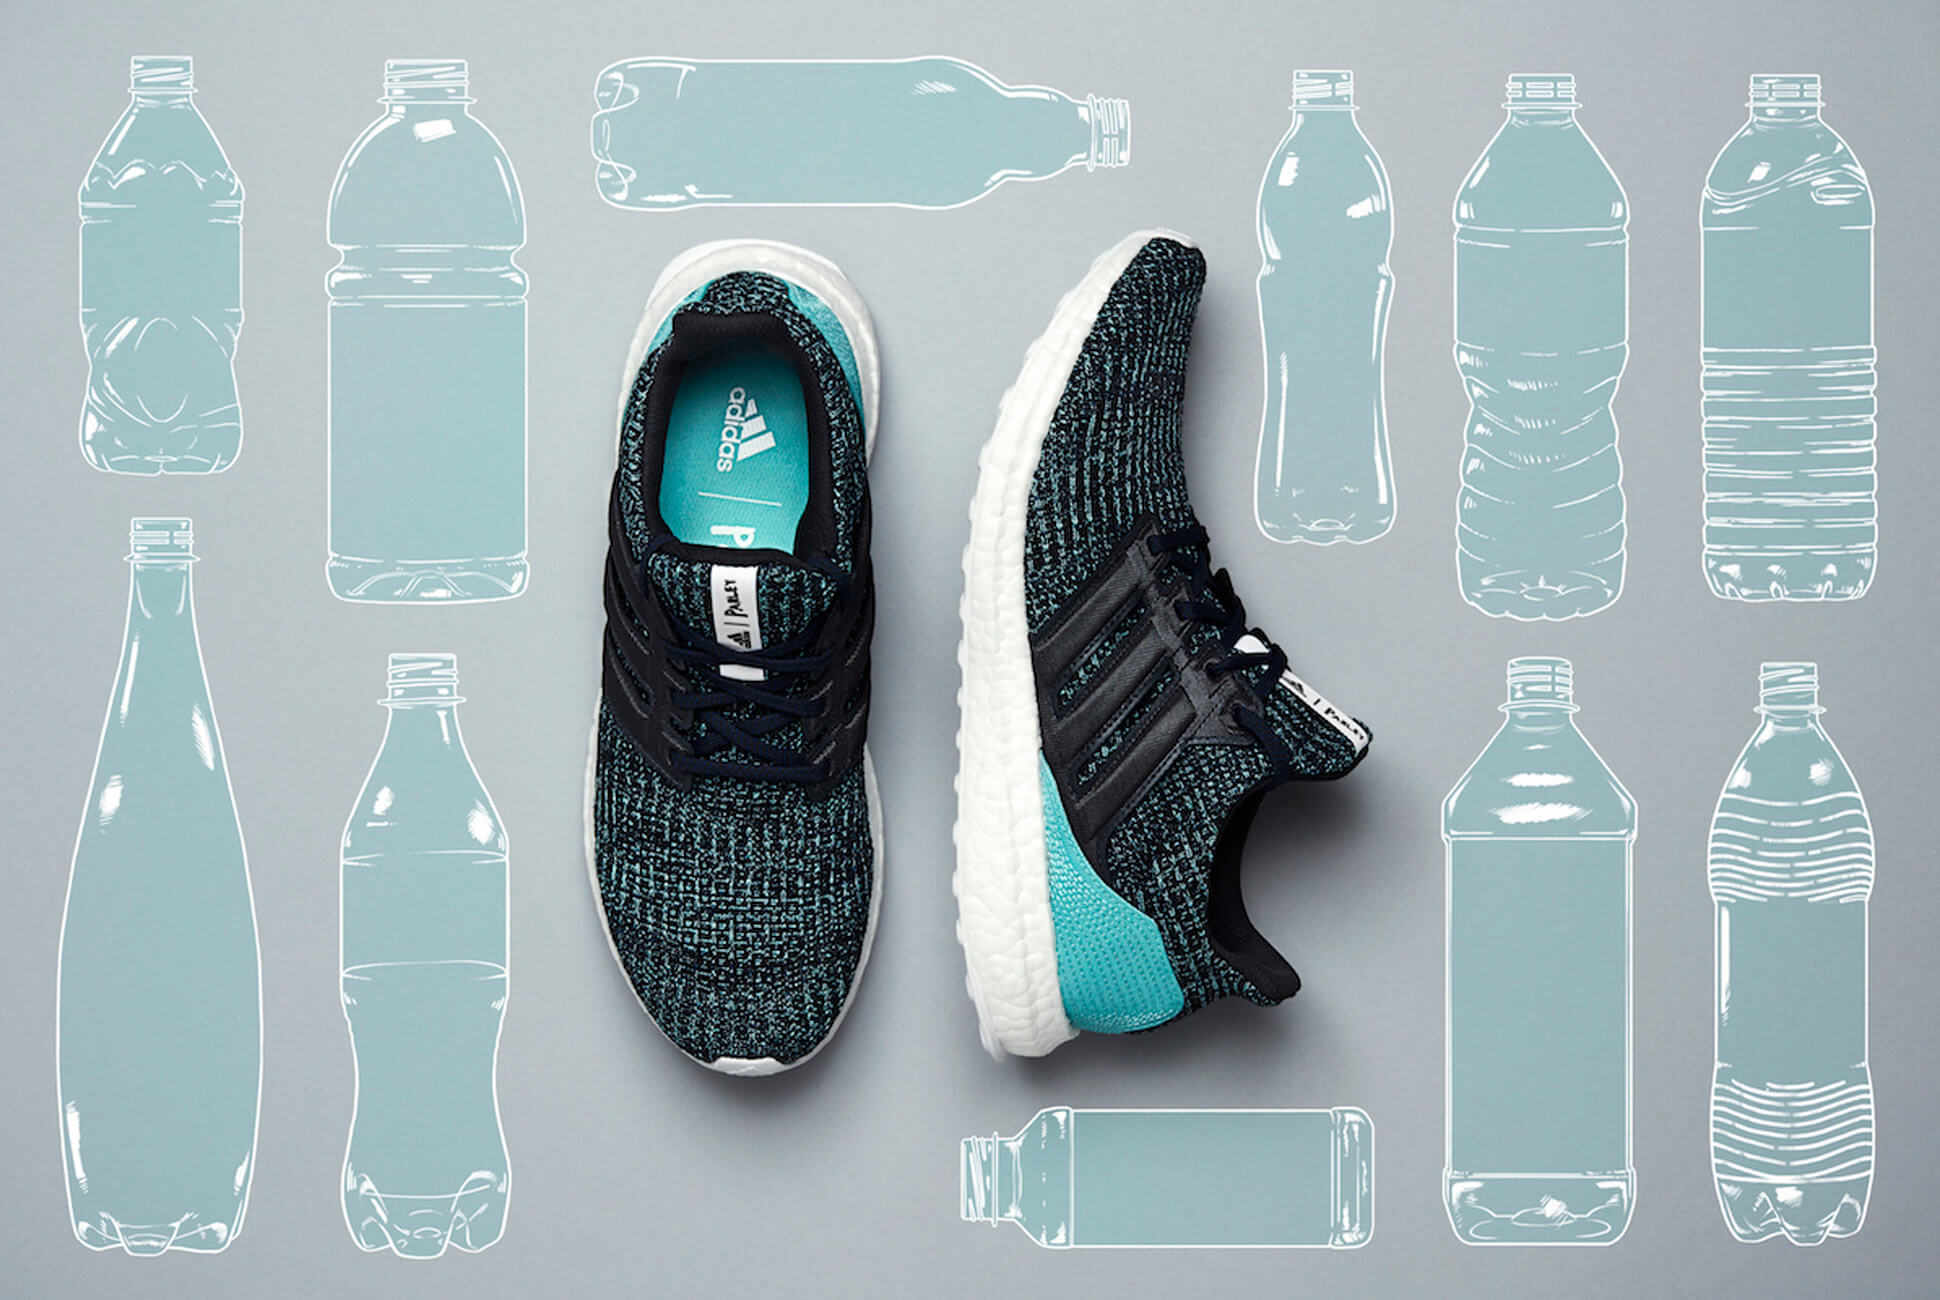 Adidas to Make 11 Million Pairs of Shoes from Recycled Ocean